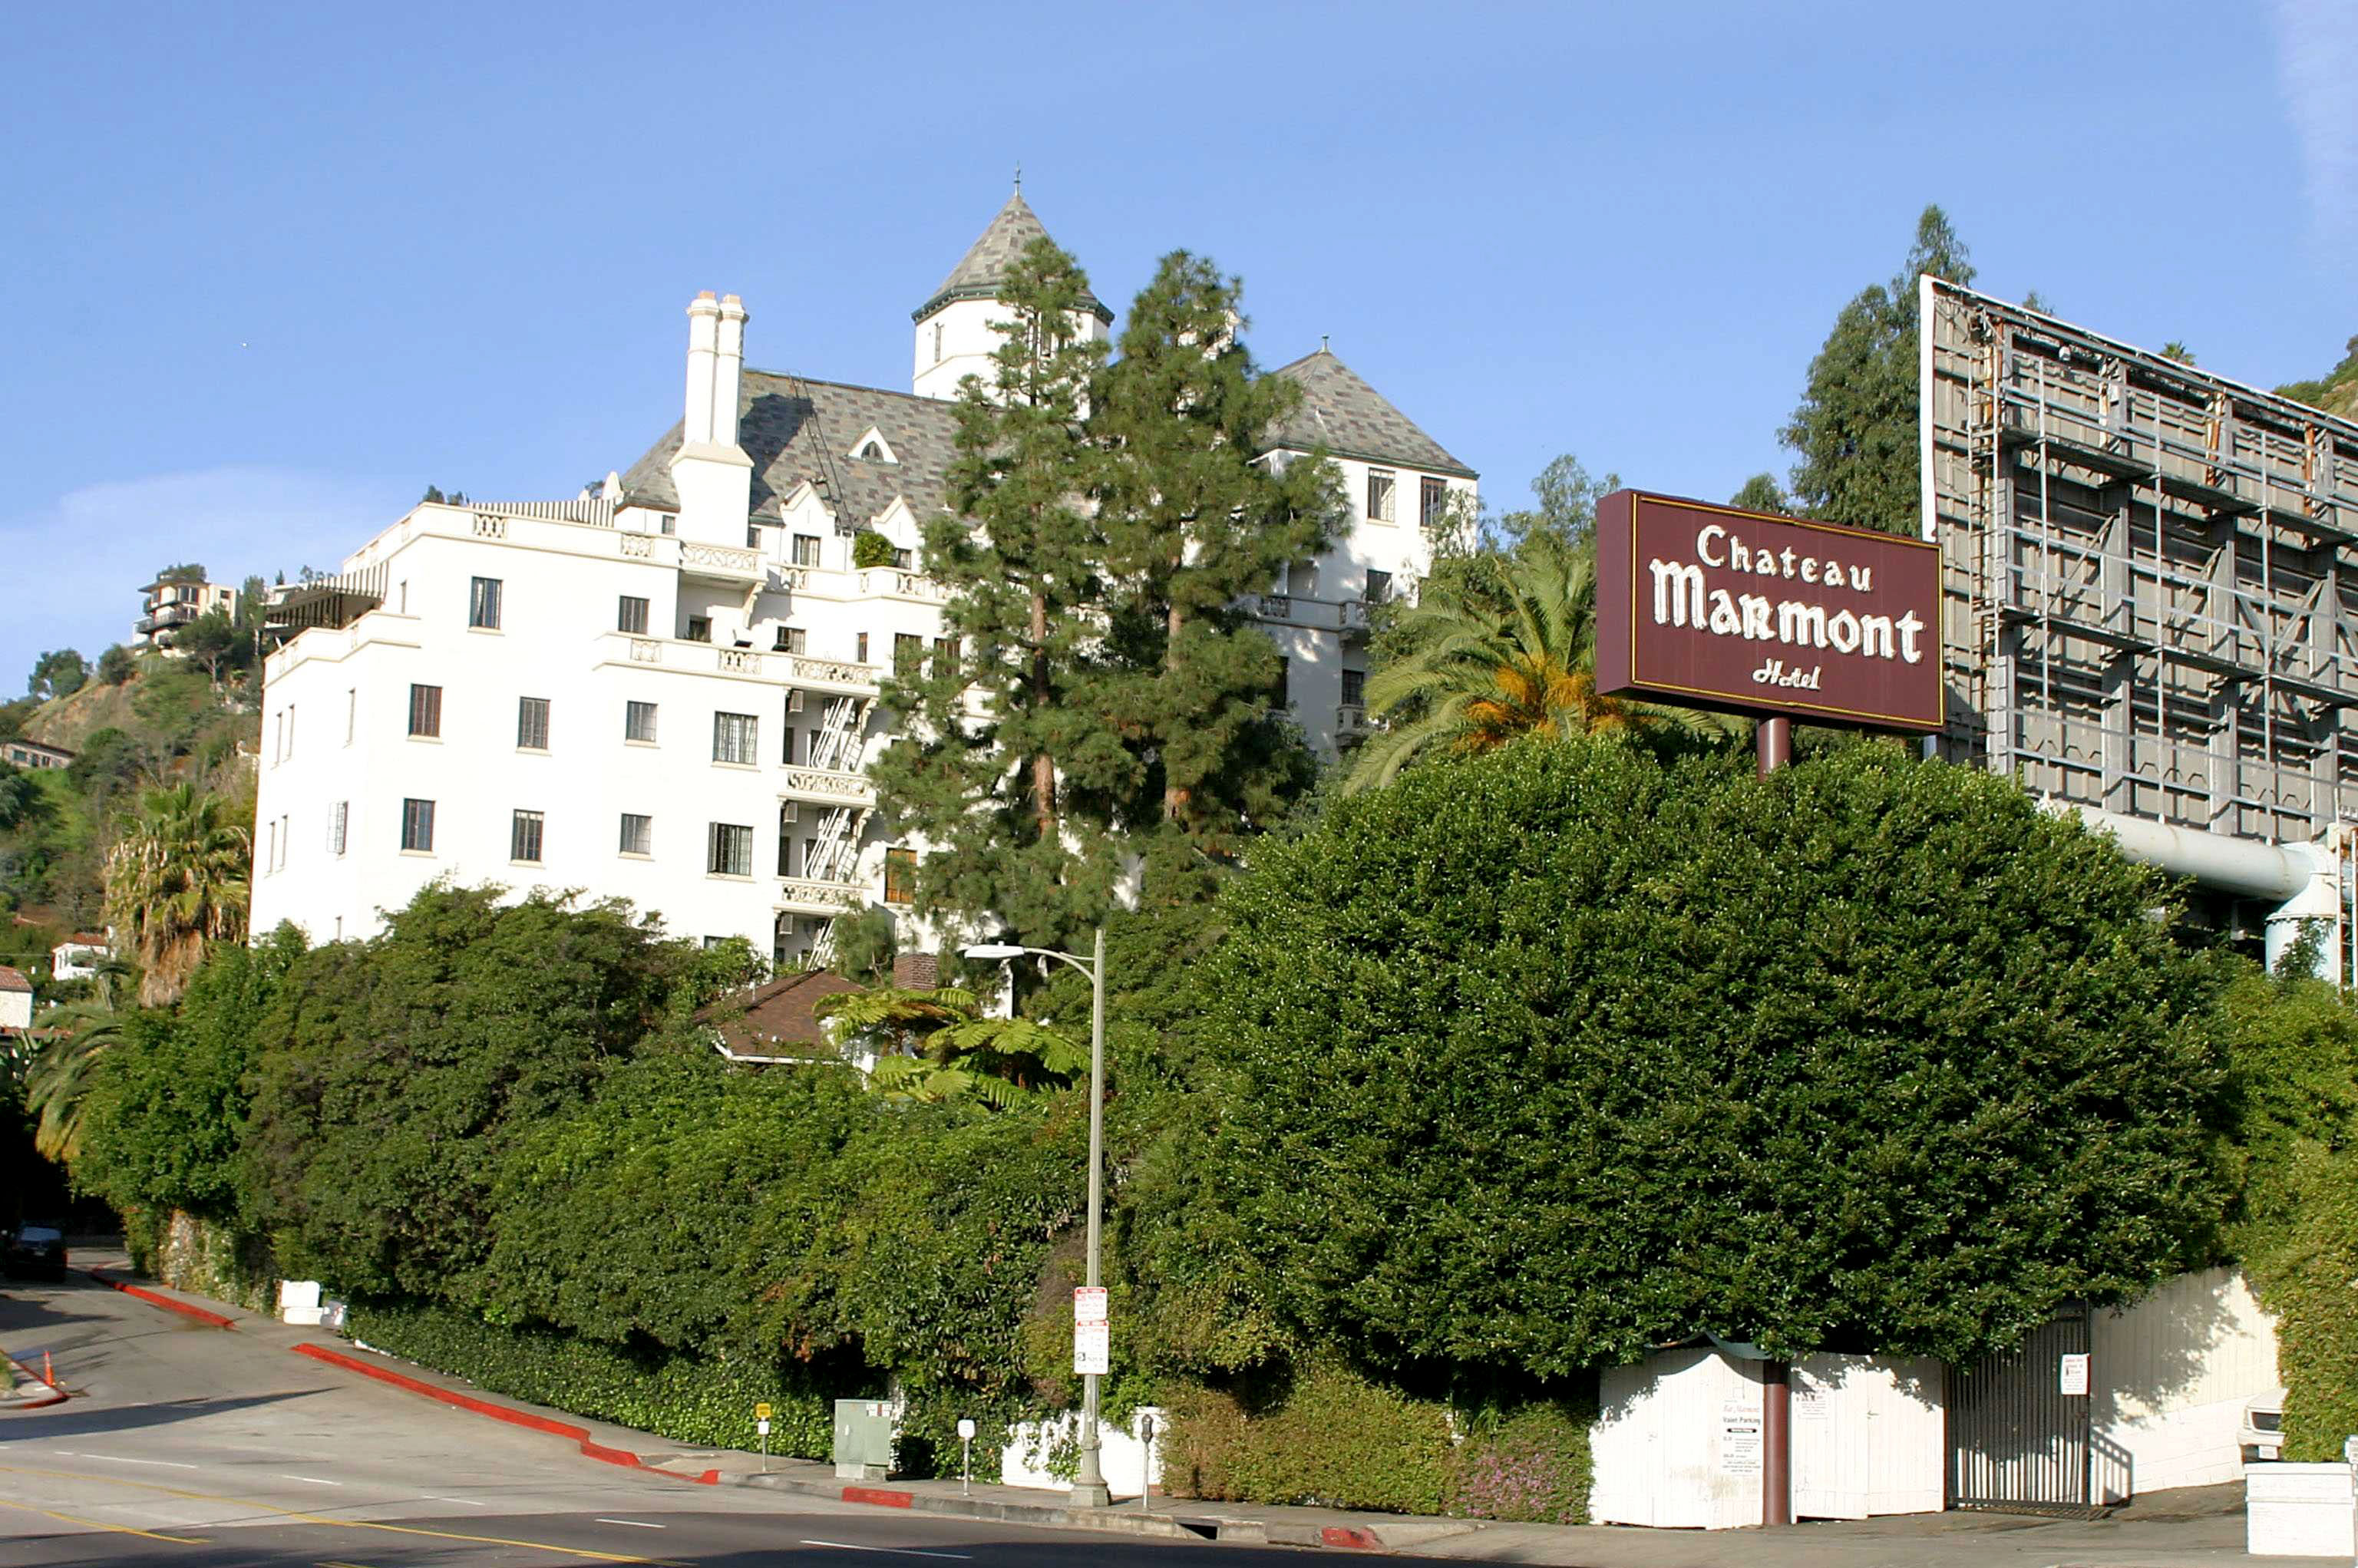 The Chateau Marmont Hotel